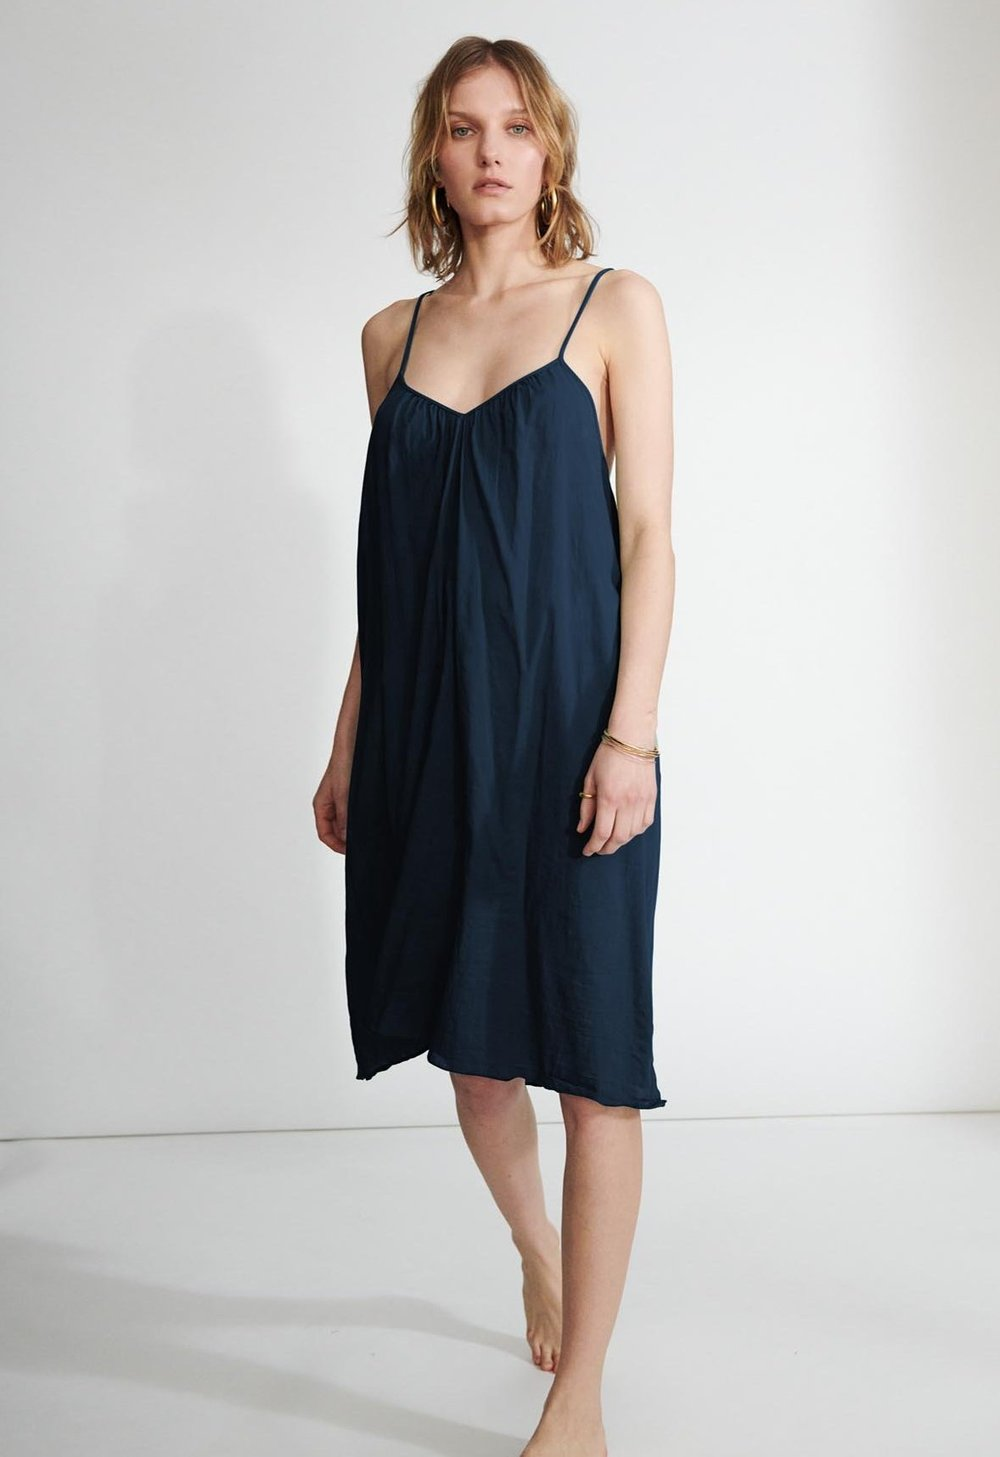 Loup Charmant V Neck Cotton Slip in Midnight